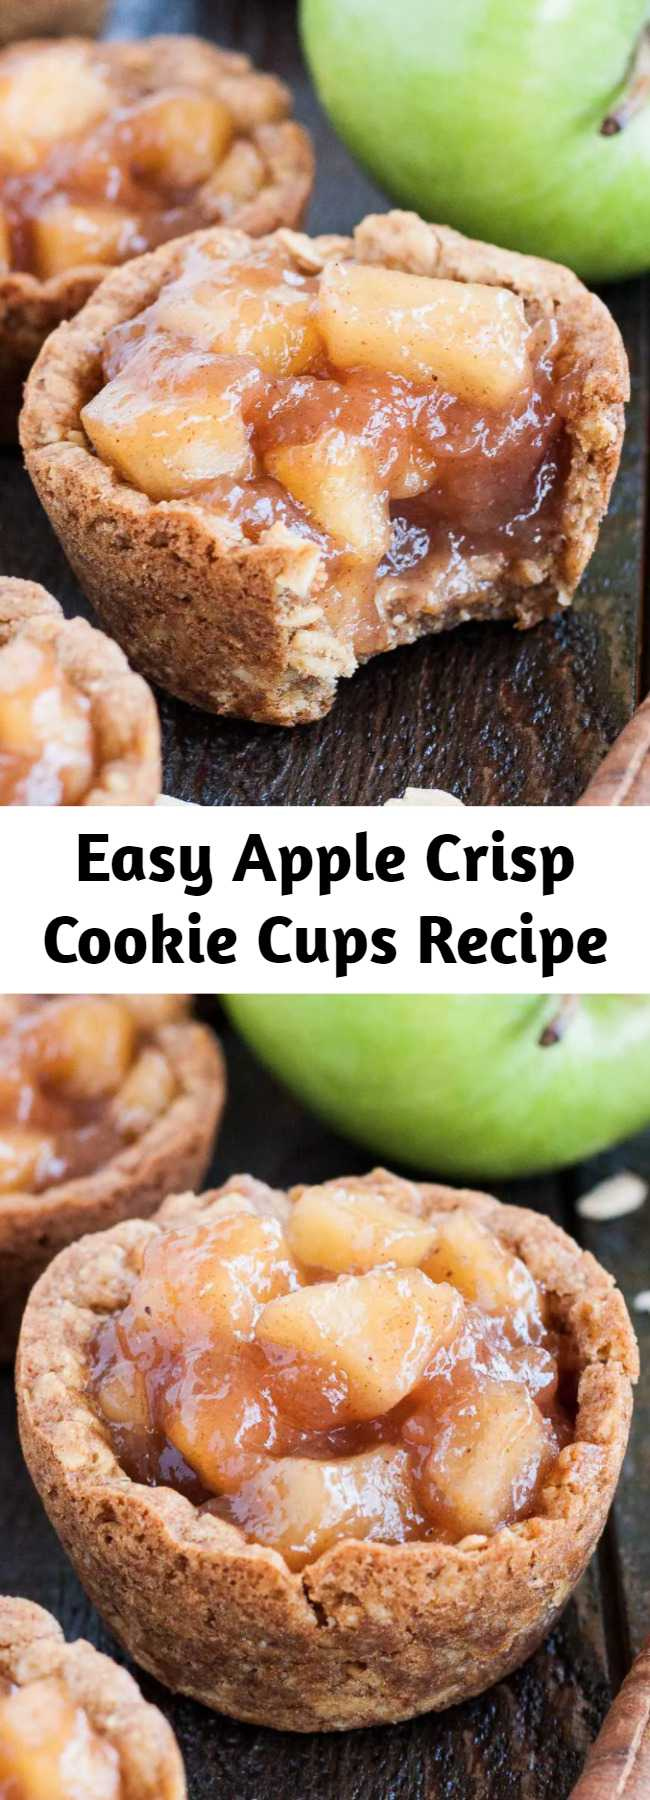 Easy Apple Crisp Cookie Cups Recipe - These Apple Crisp Cookie Cups combine classic oatmeal cookies with homemade apple pie filling for the perfect comfort food.